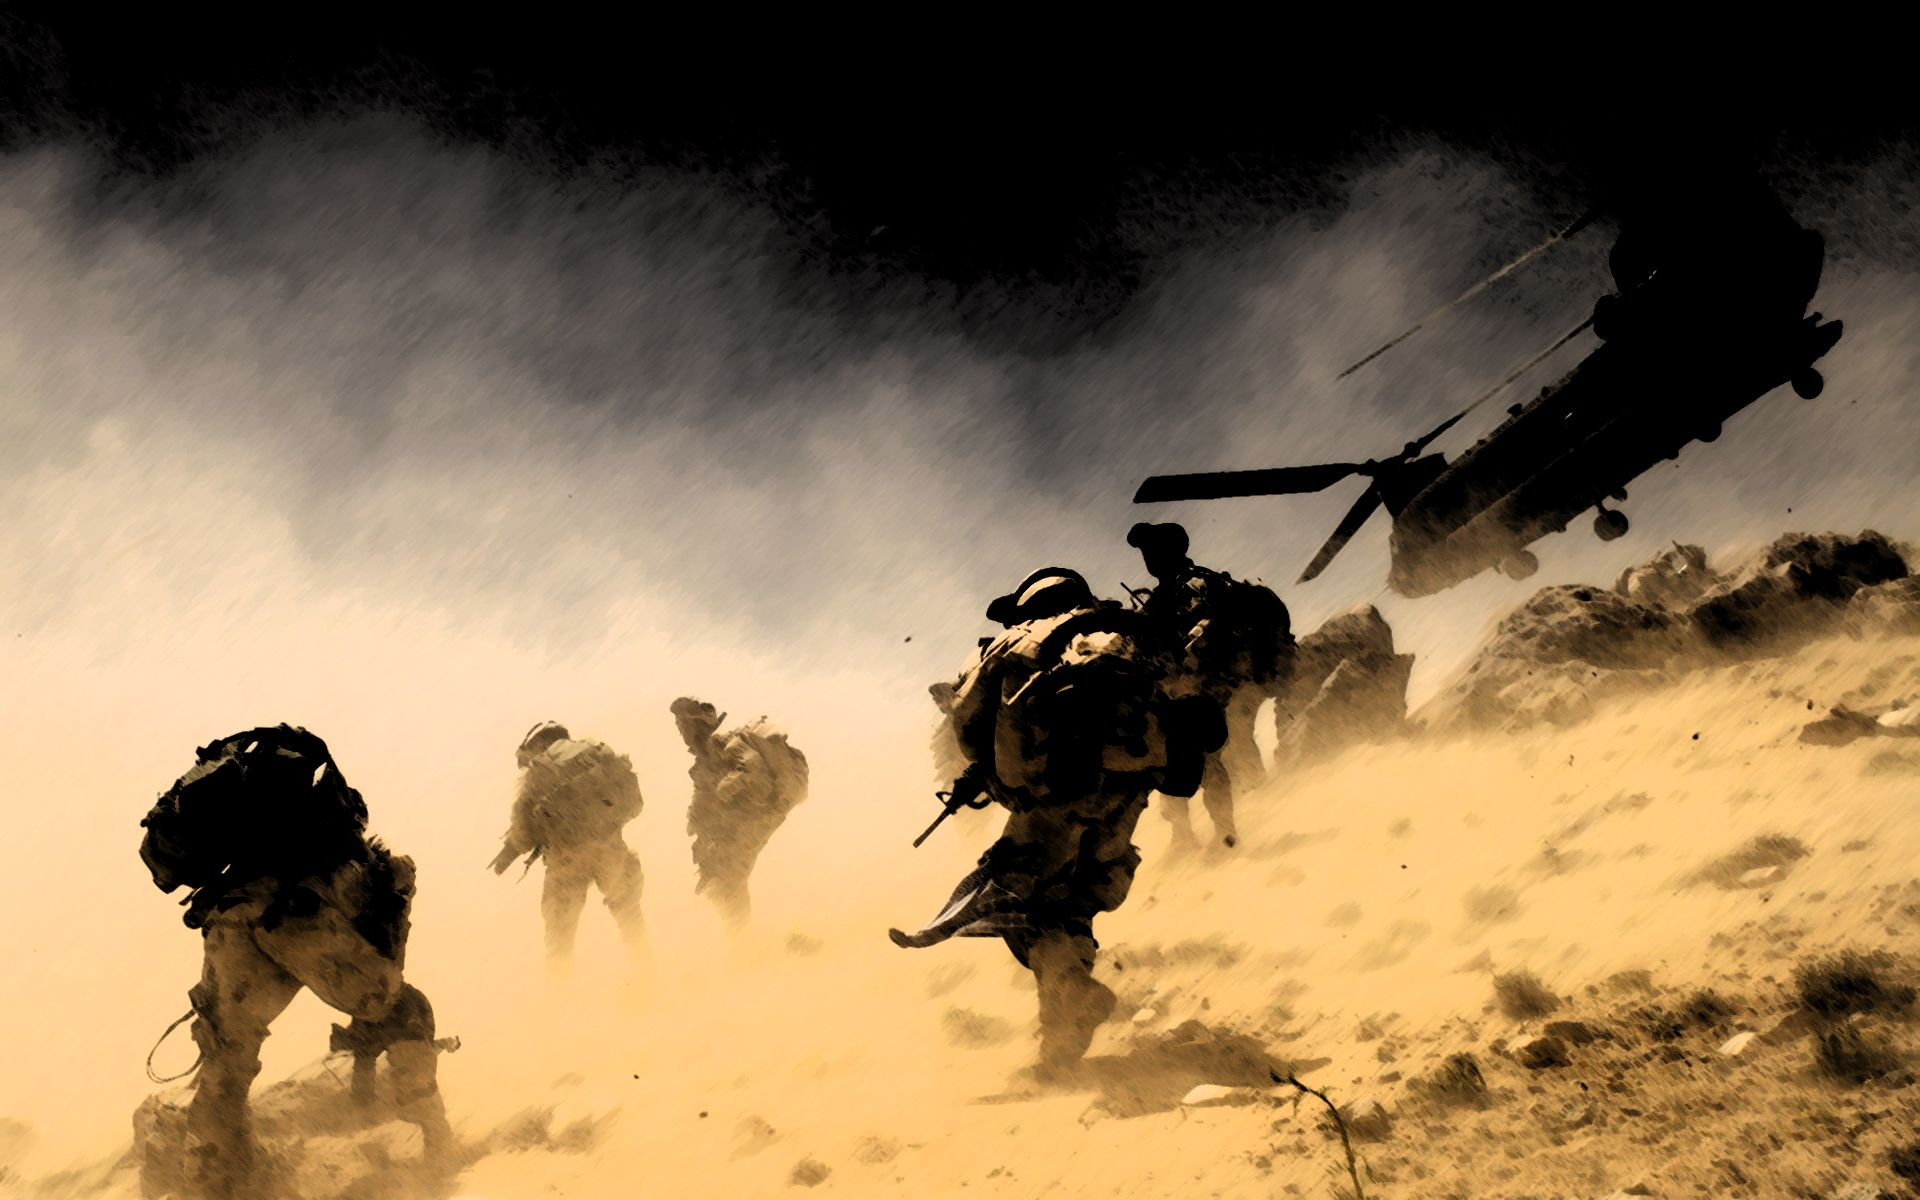 Military Military Wallpaper Army Wallpaper Military Soldiers